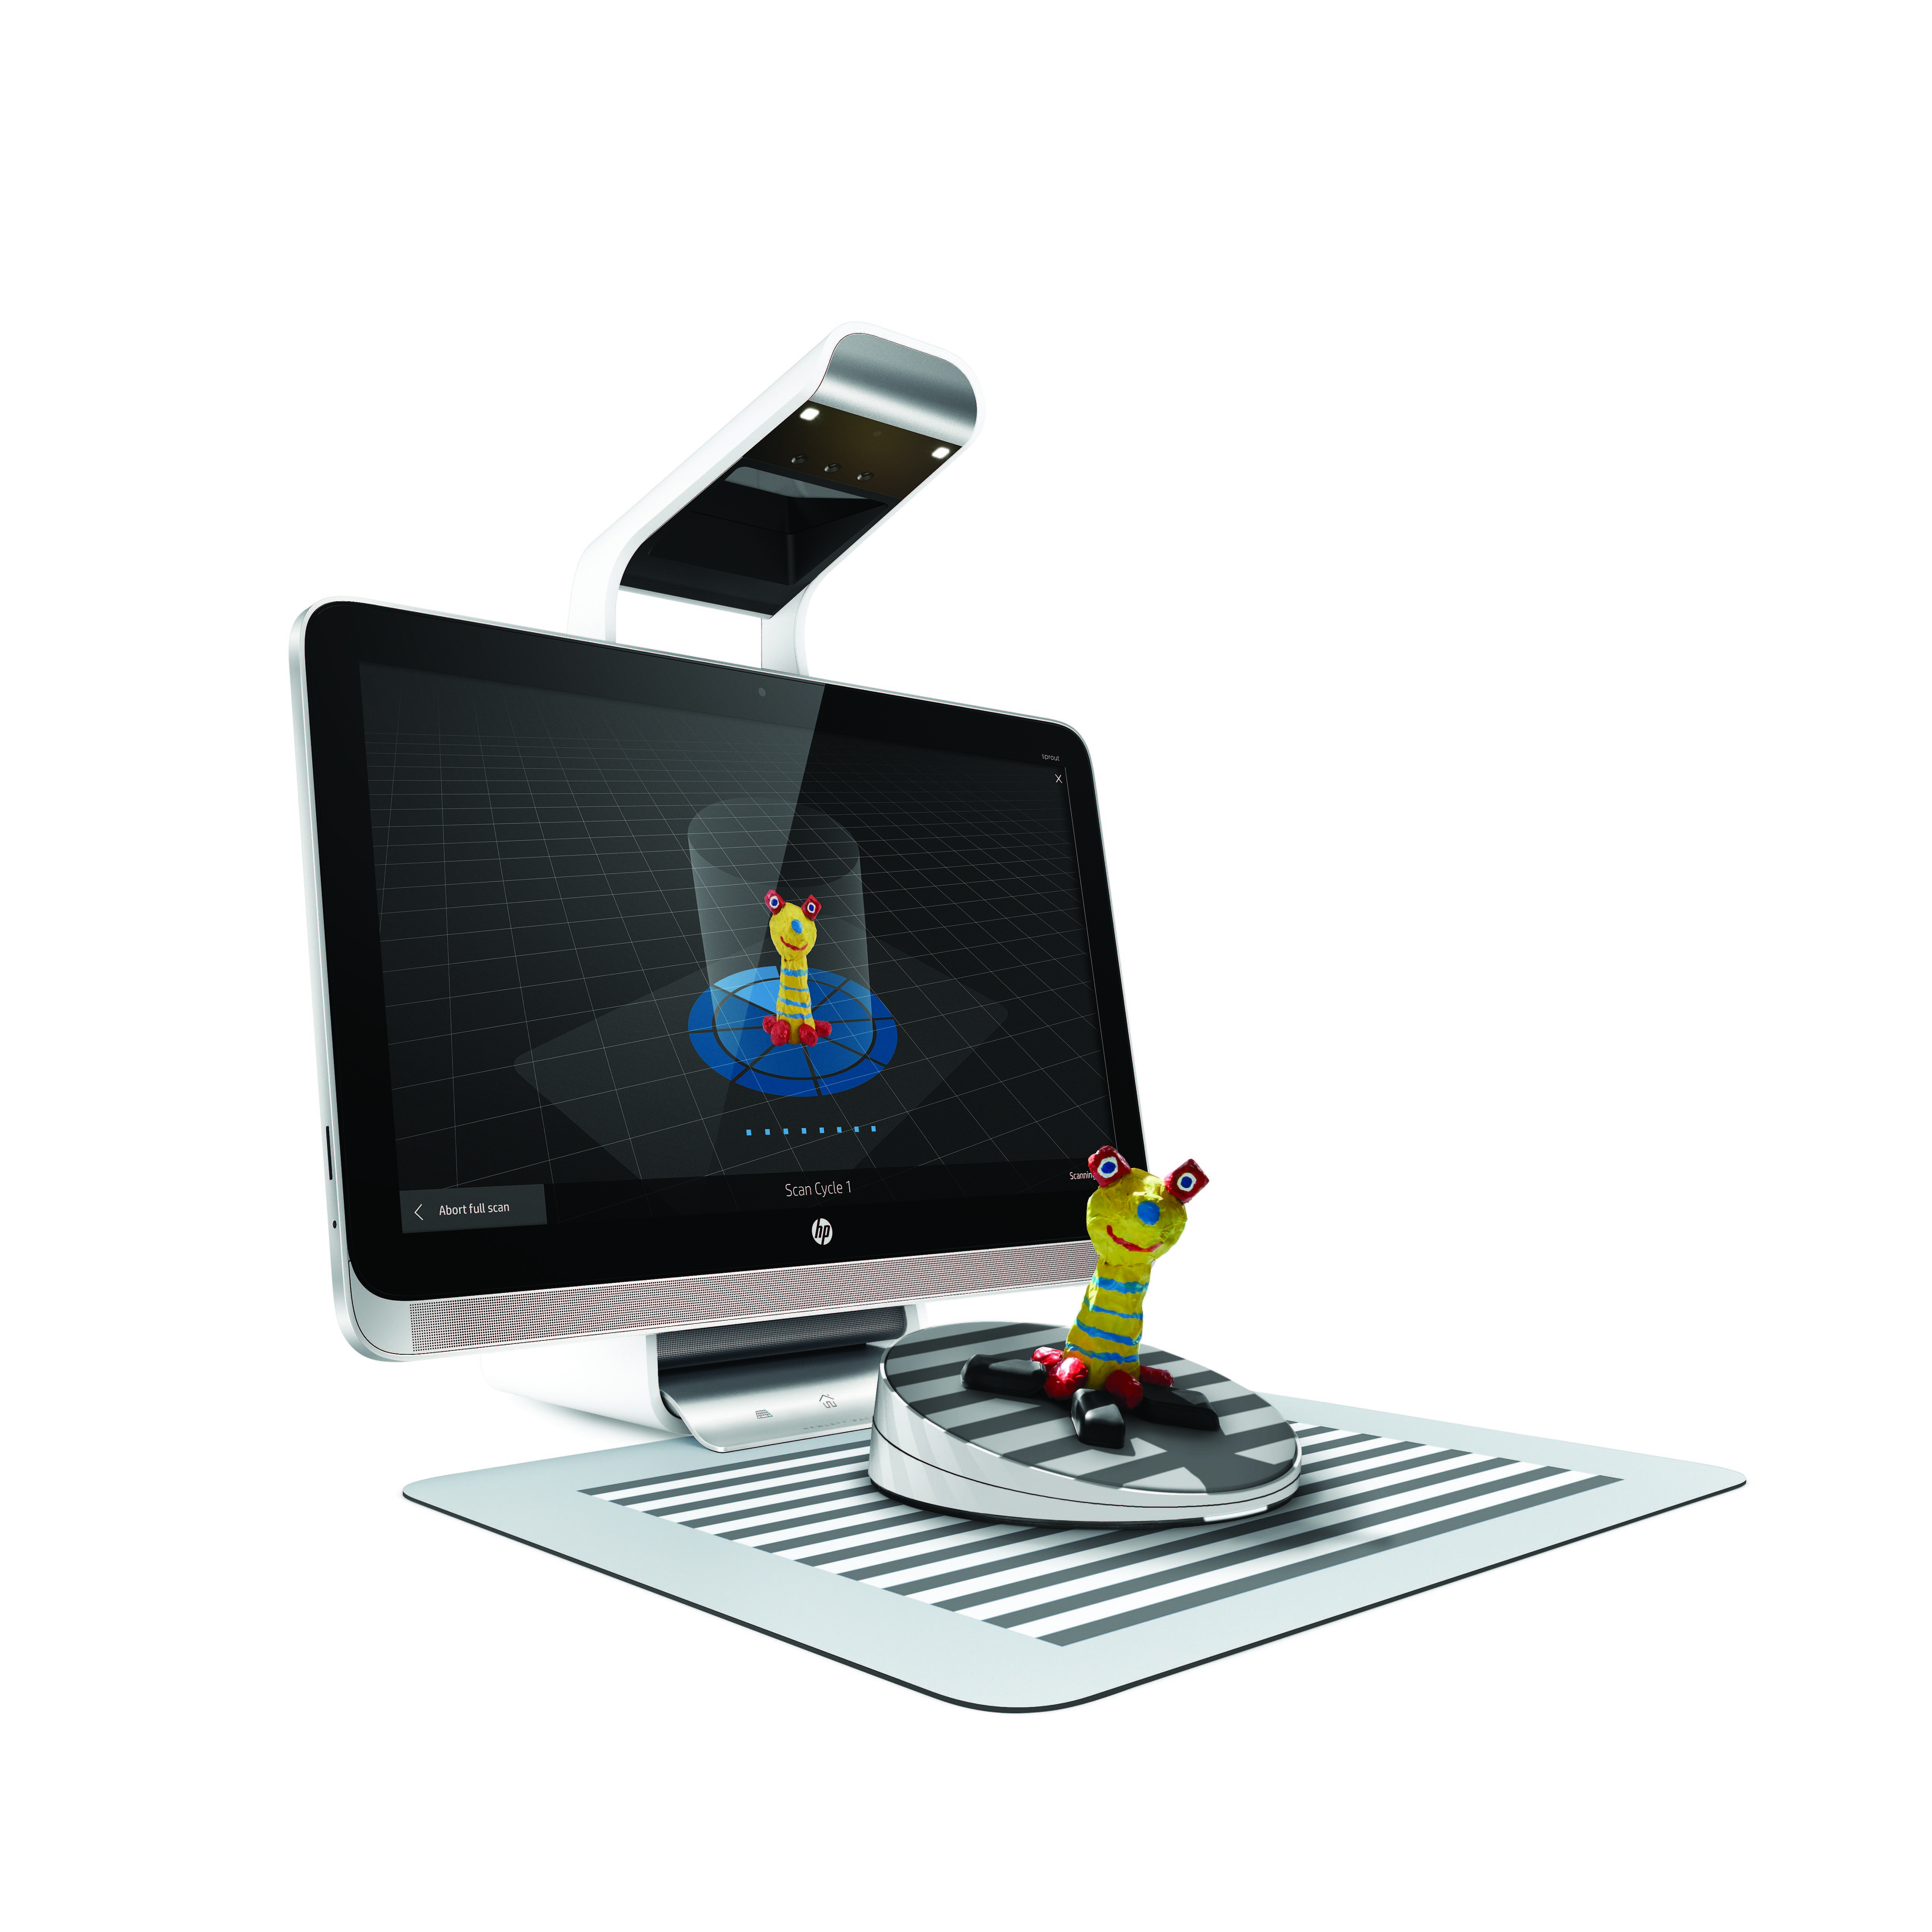 HP Announces Full 3D Scanning With New Capture Application